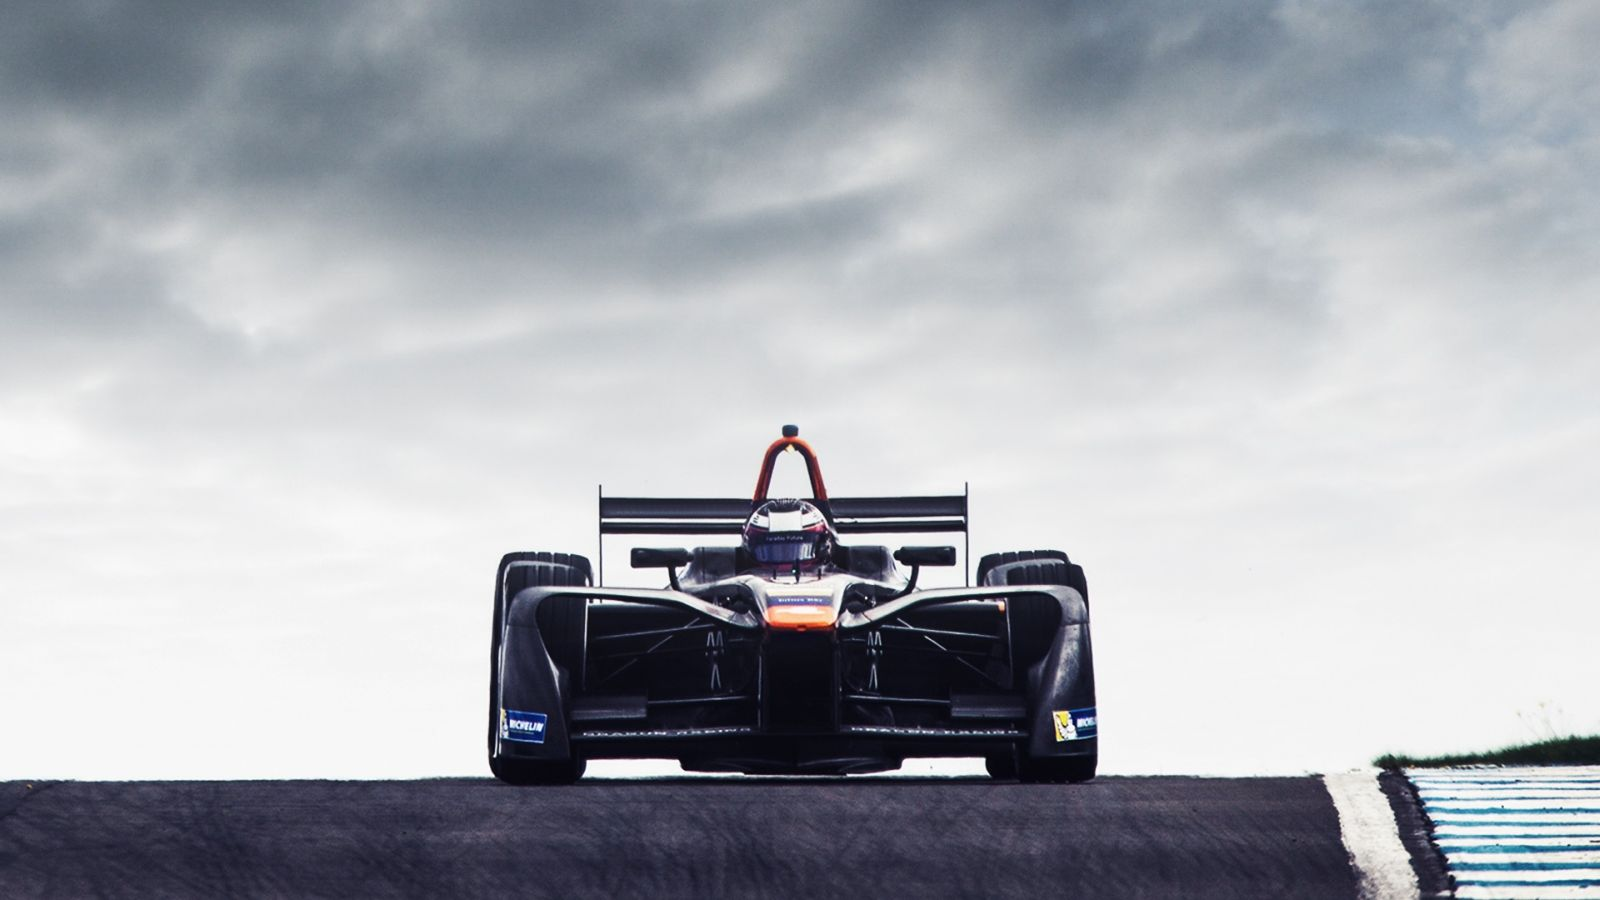 LeEco-Faraday-Future-Dragon-Racing-Formula-E-8-PNG